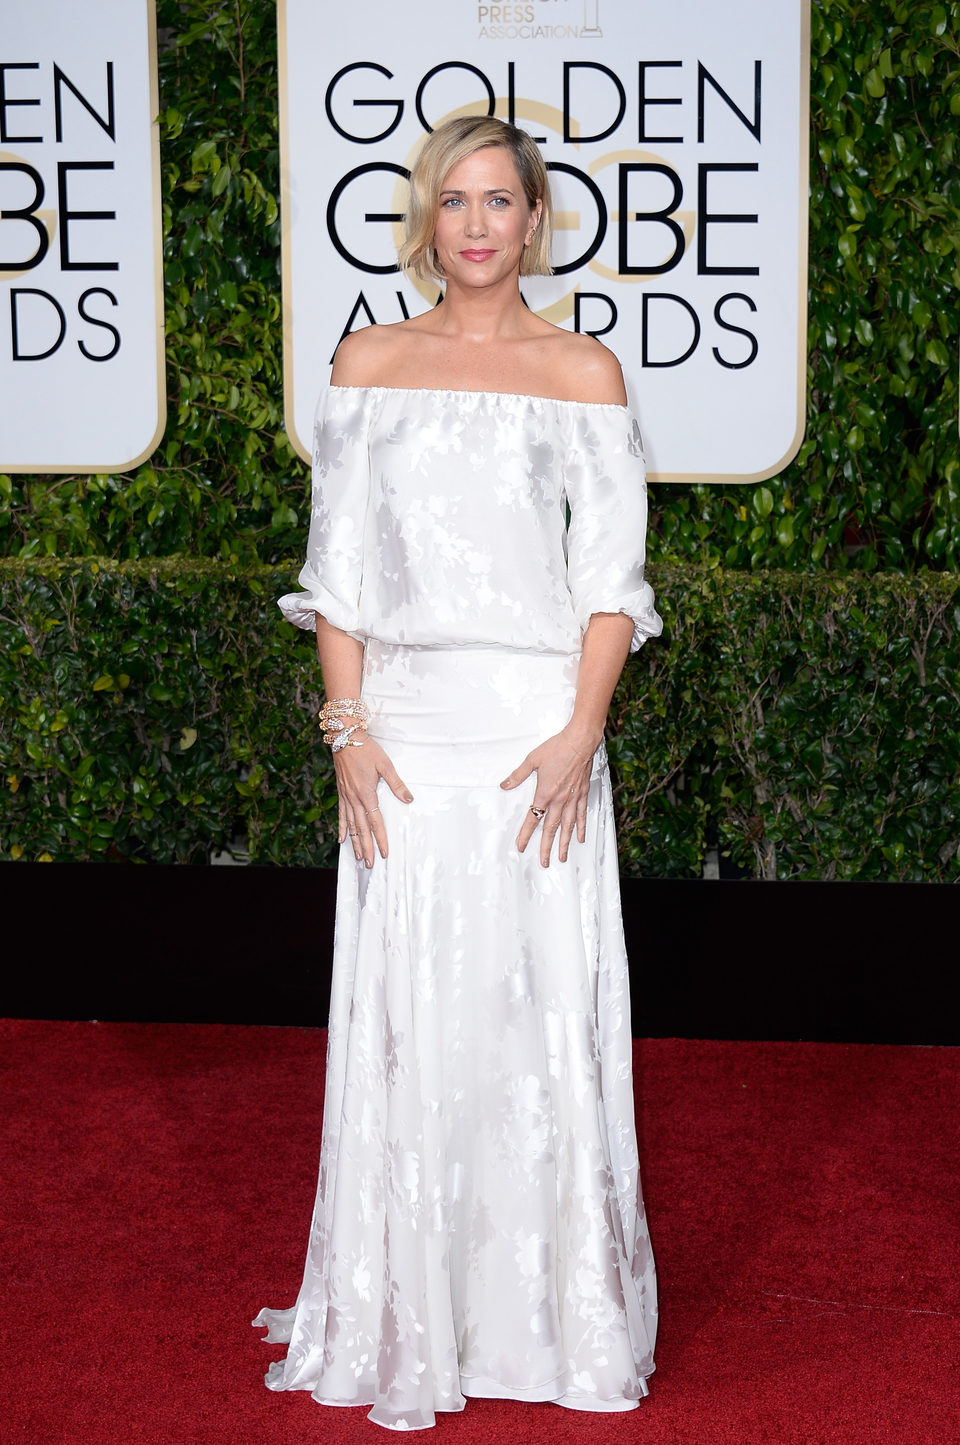 Kristen Wiig at the Golden Globes 2015 red carpet